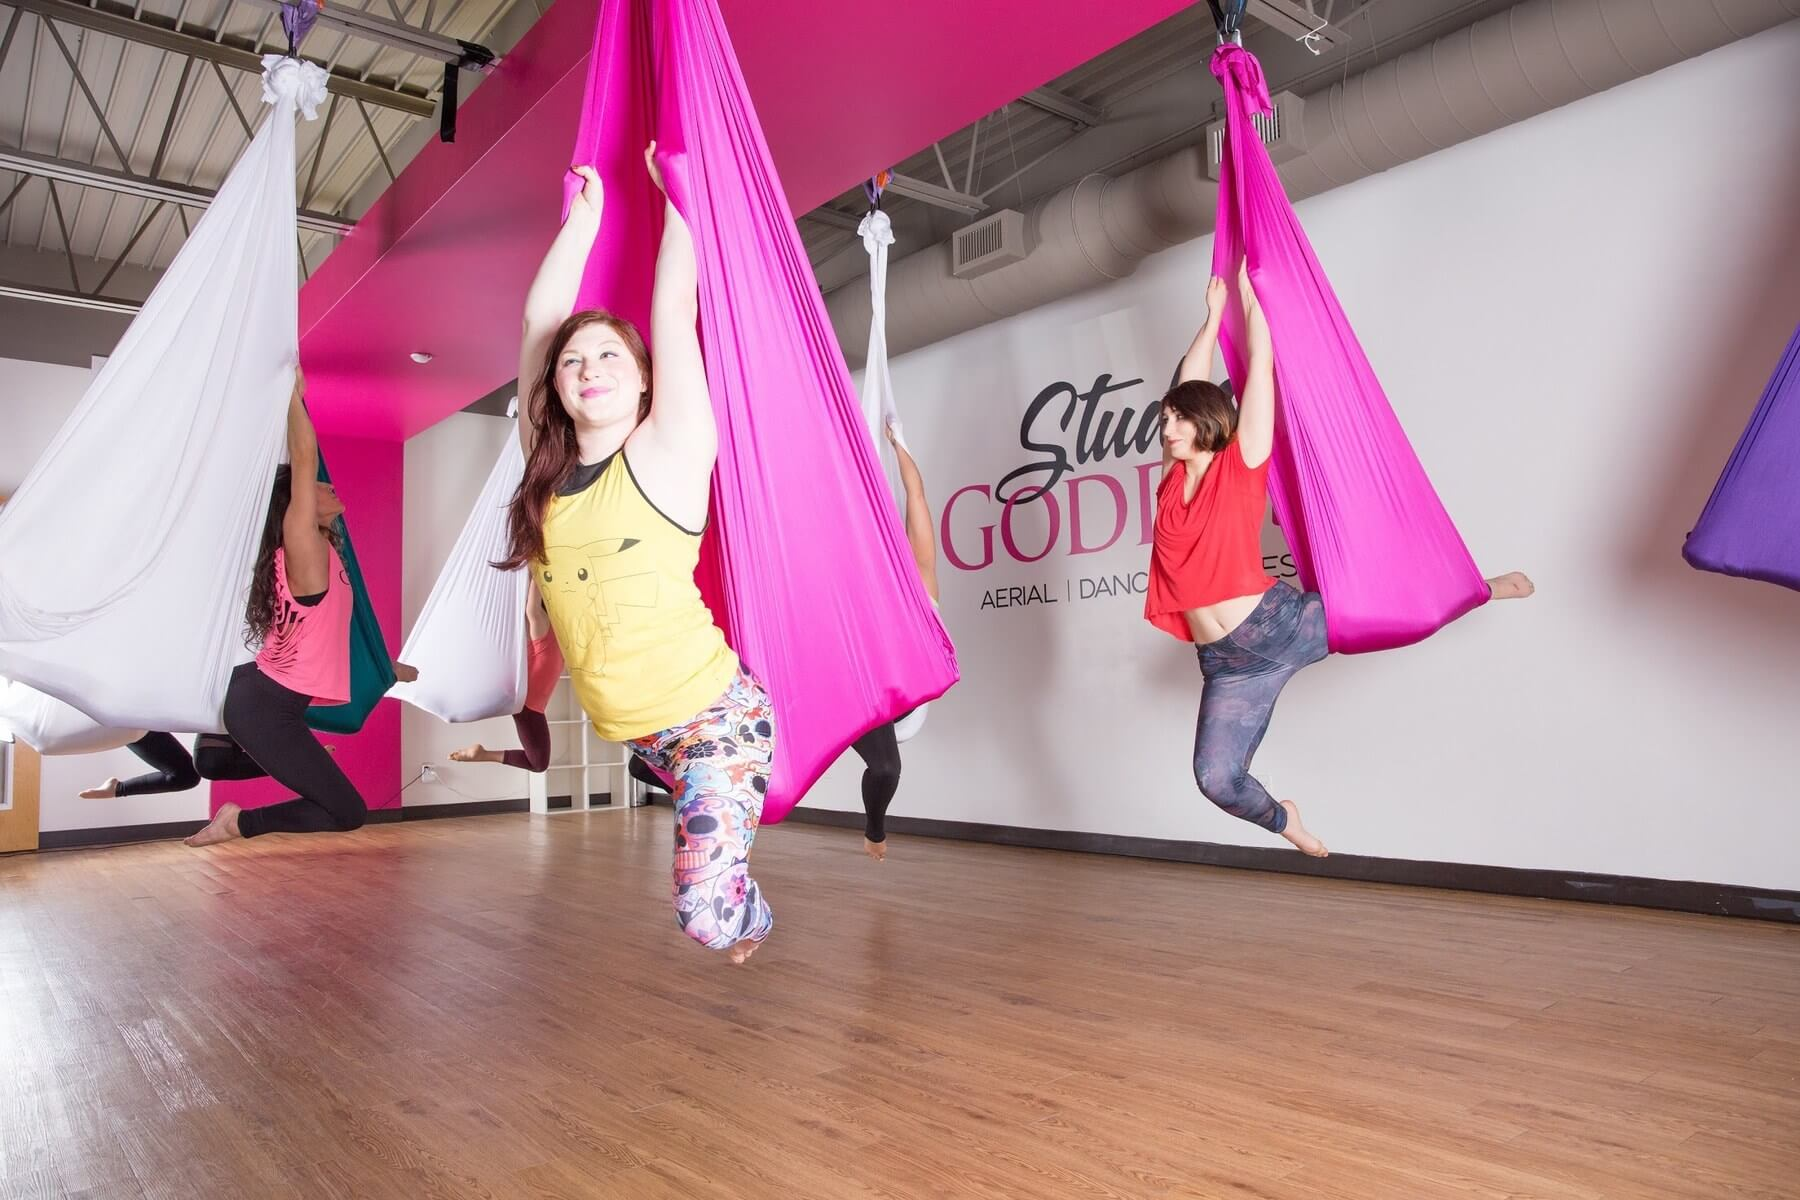 Women learning how to work aerial hammock at Studio Goddess